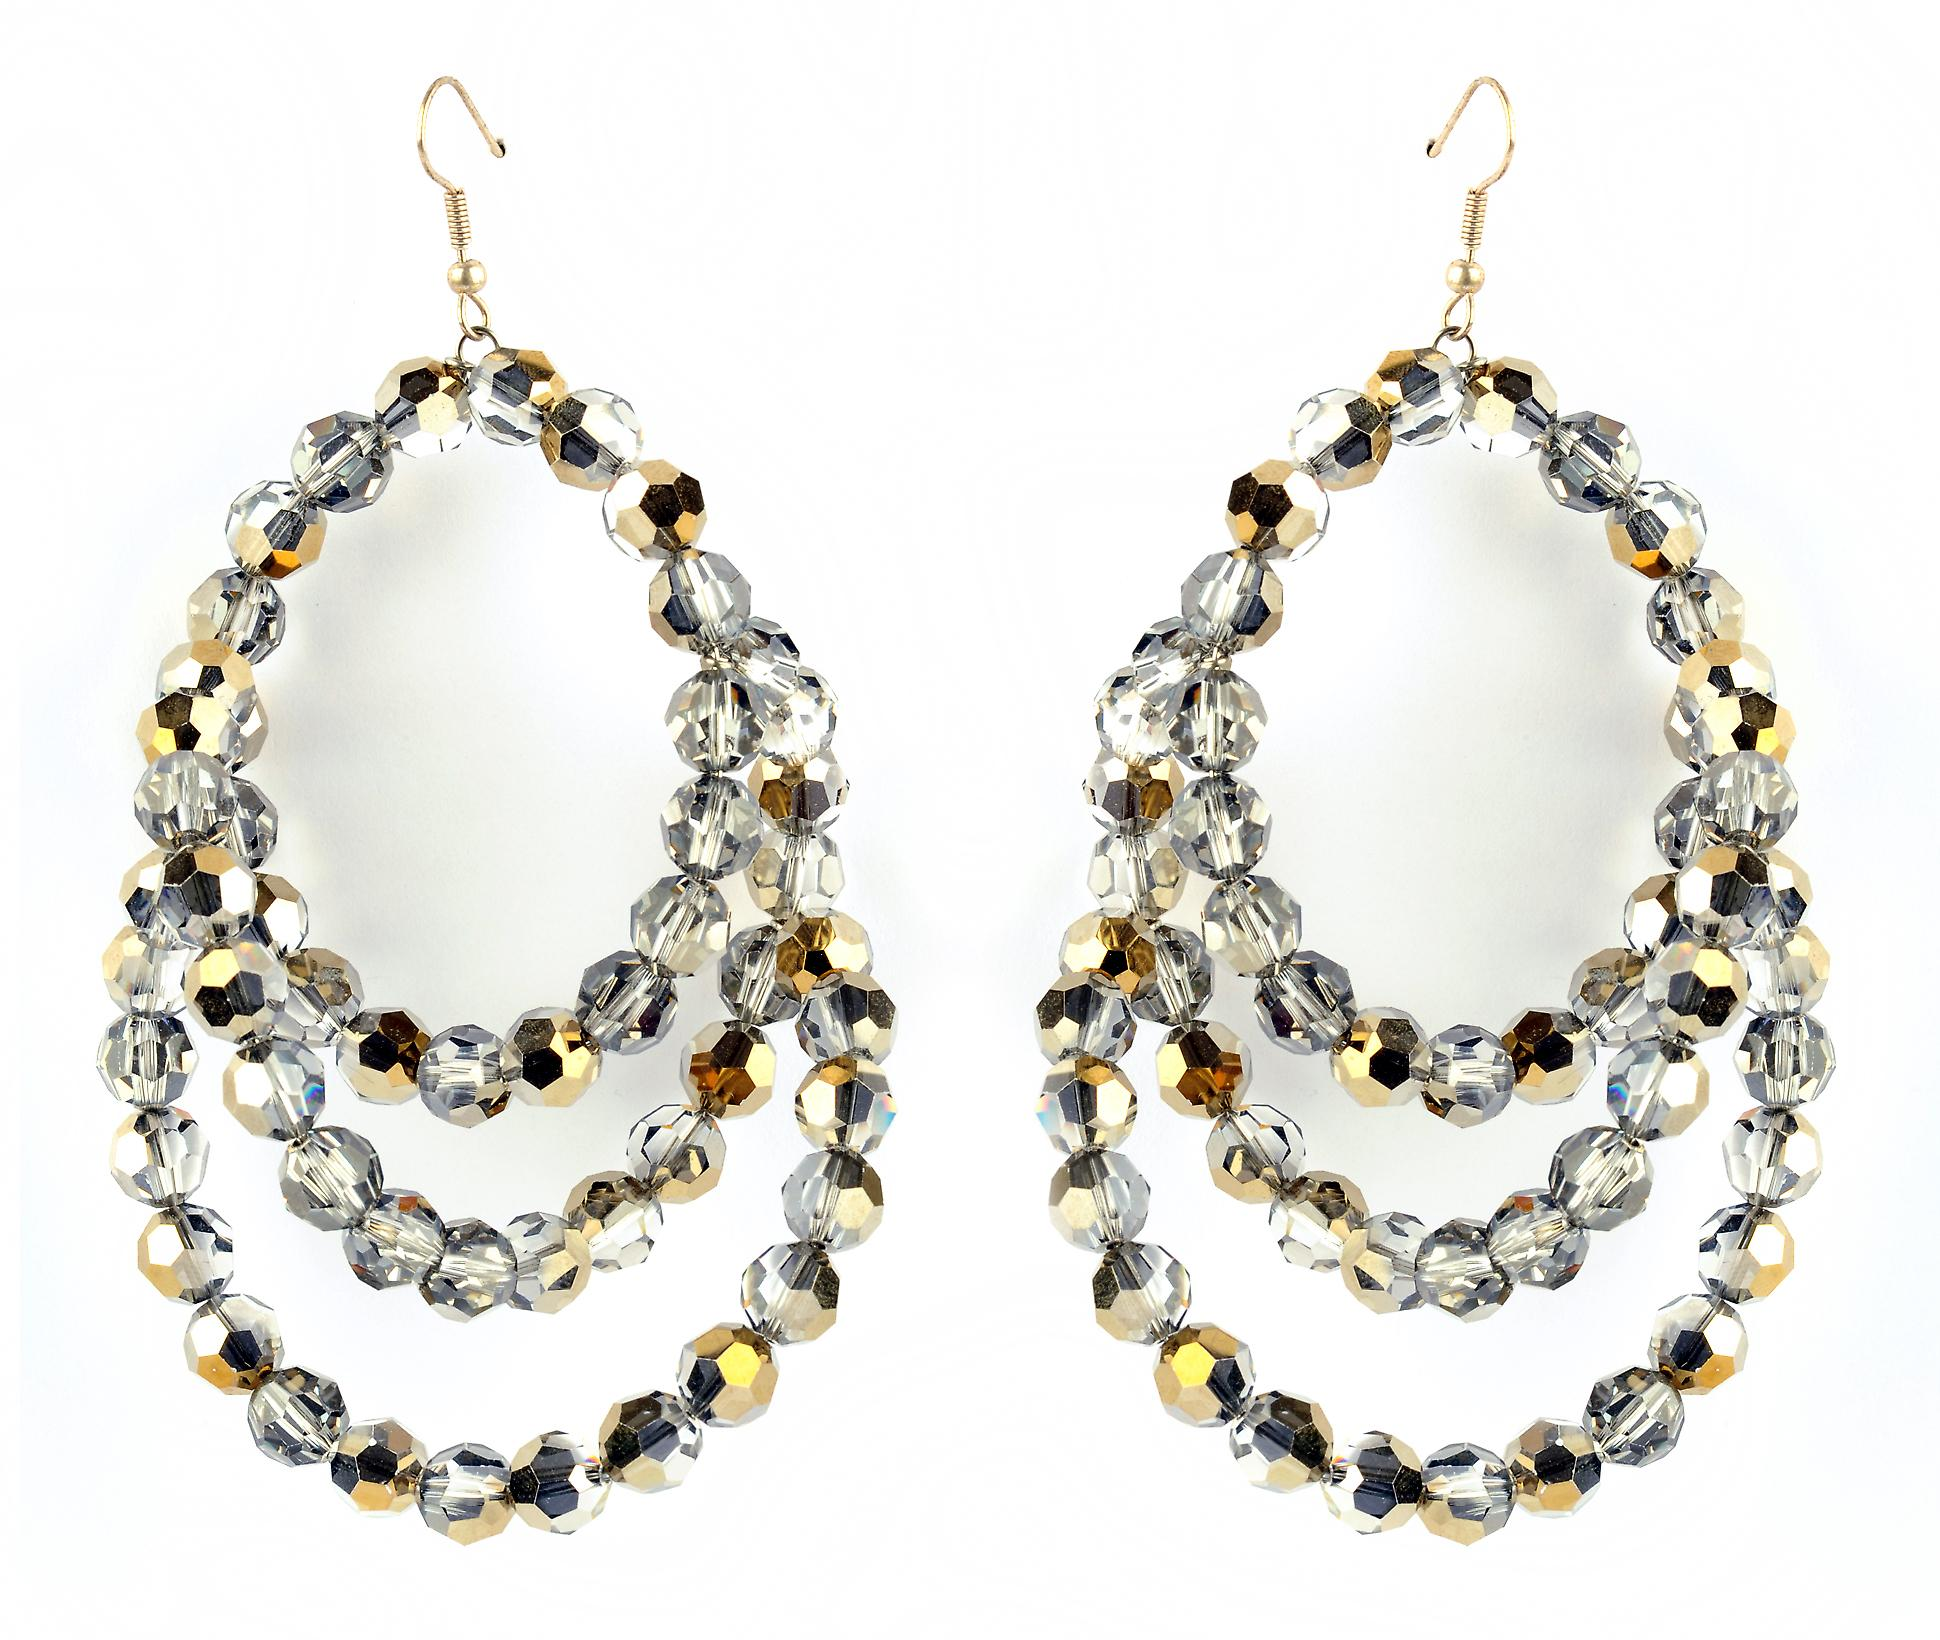 Waooh - Fashion Jewellery - WJ0759 - Large Oreilleavec Swarovski Earrings Color Silver Chrome Iridium